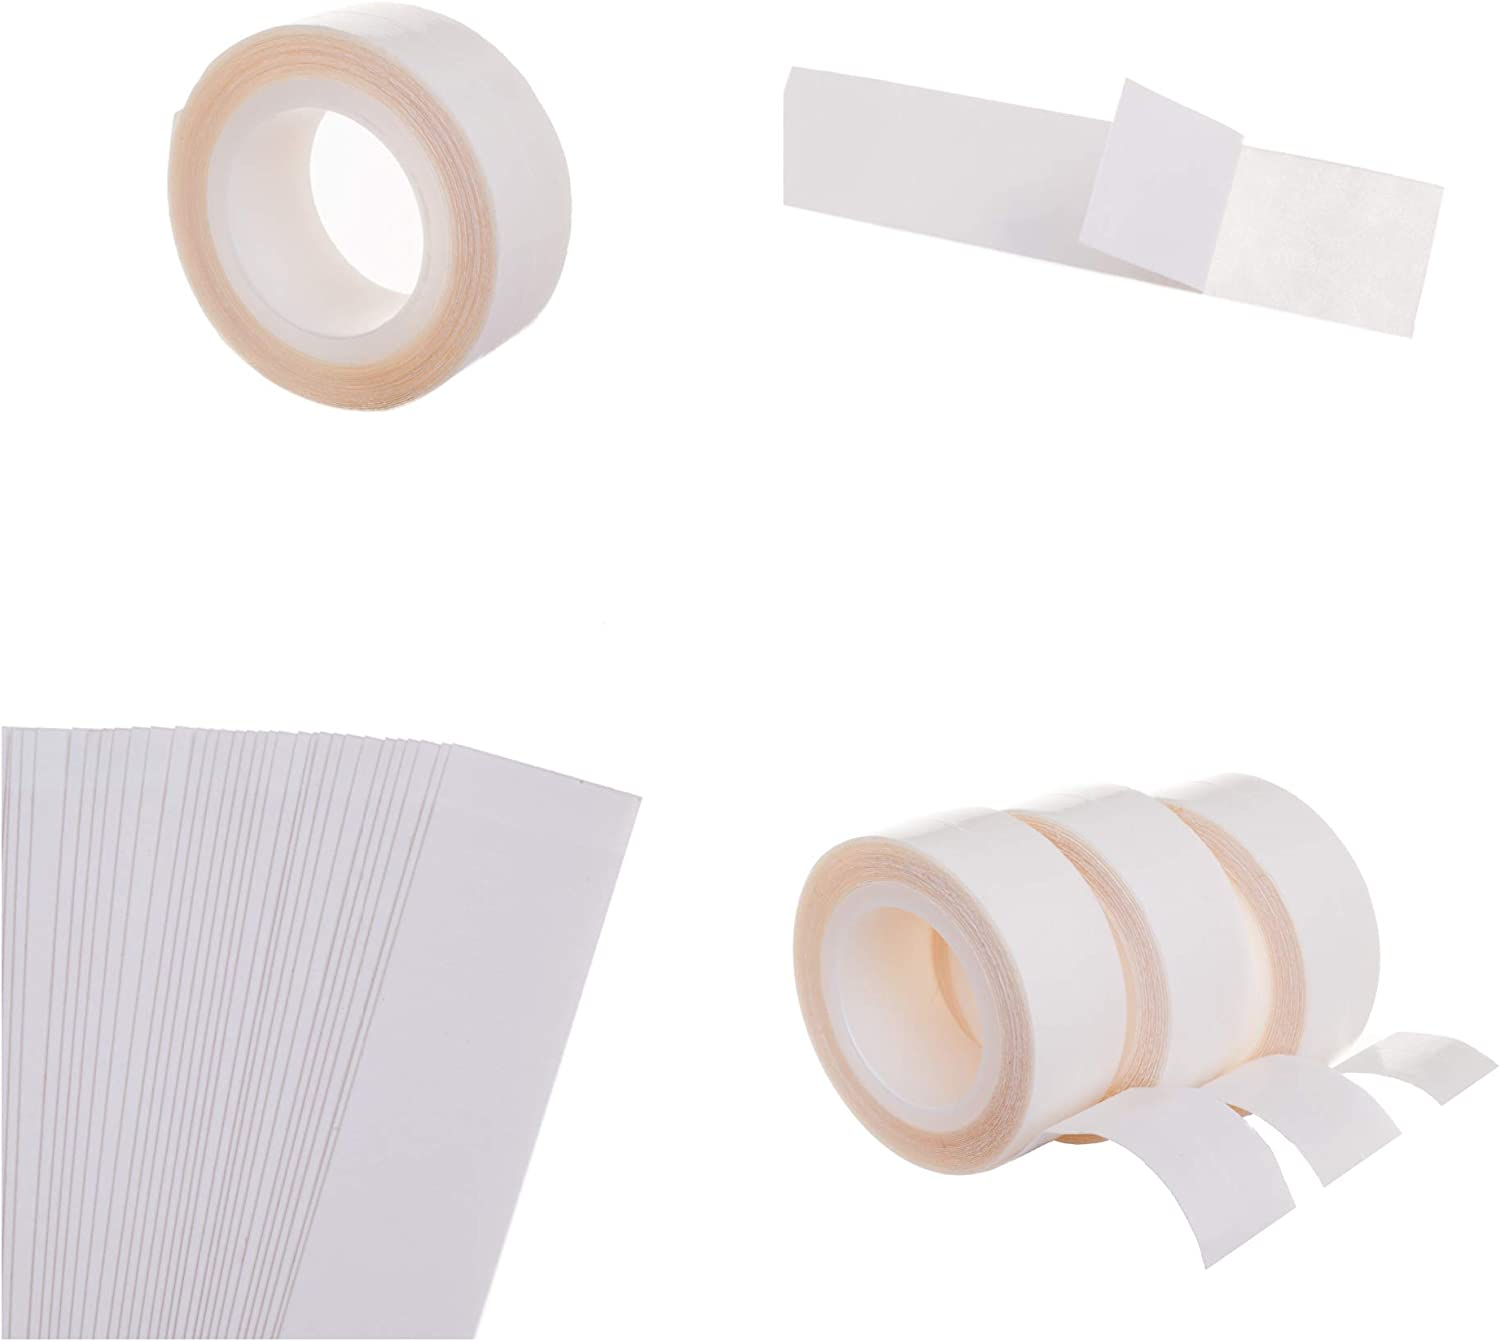 Tit Tape - EXTRA STICKY FABULOUS FASHION TAPE Jo Thornton NEW Self Adhesive Double-Sided Fashion Body Tape Rolls or Strips